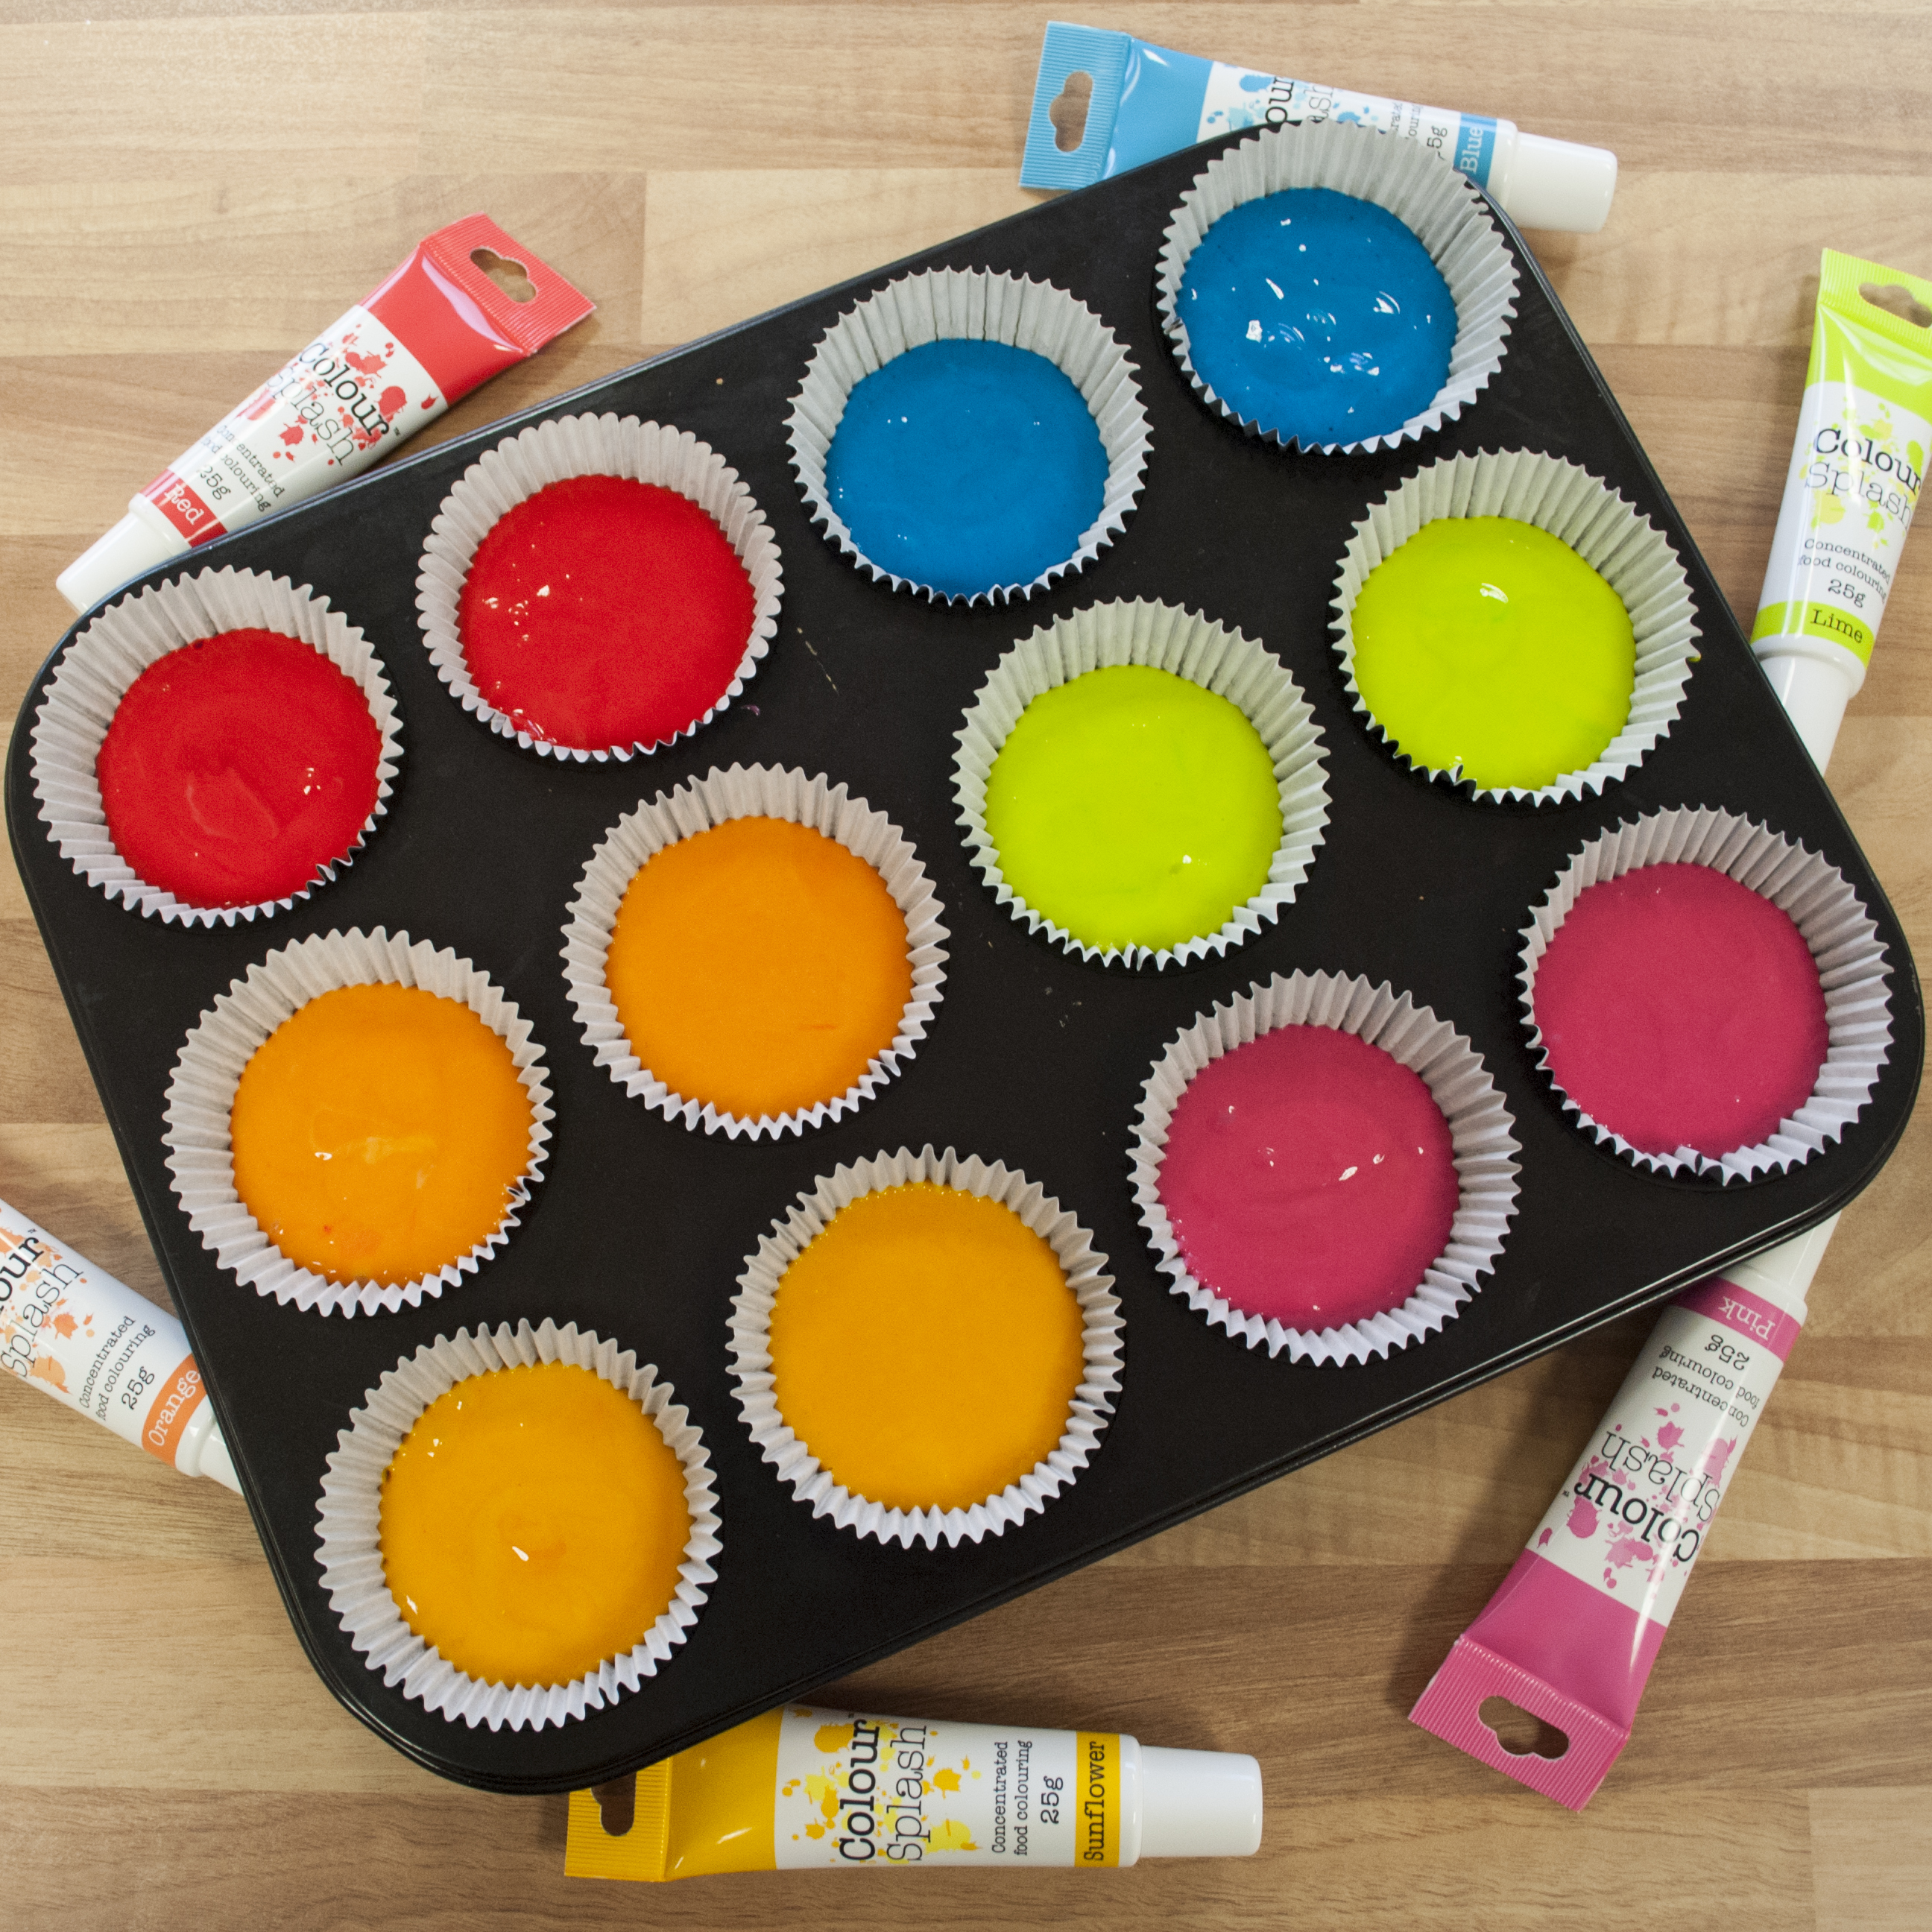 Food Colouring Gel by Colour Splash - Red